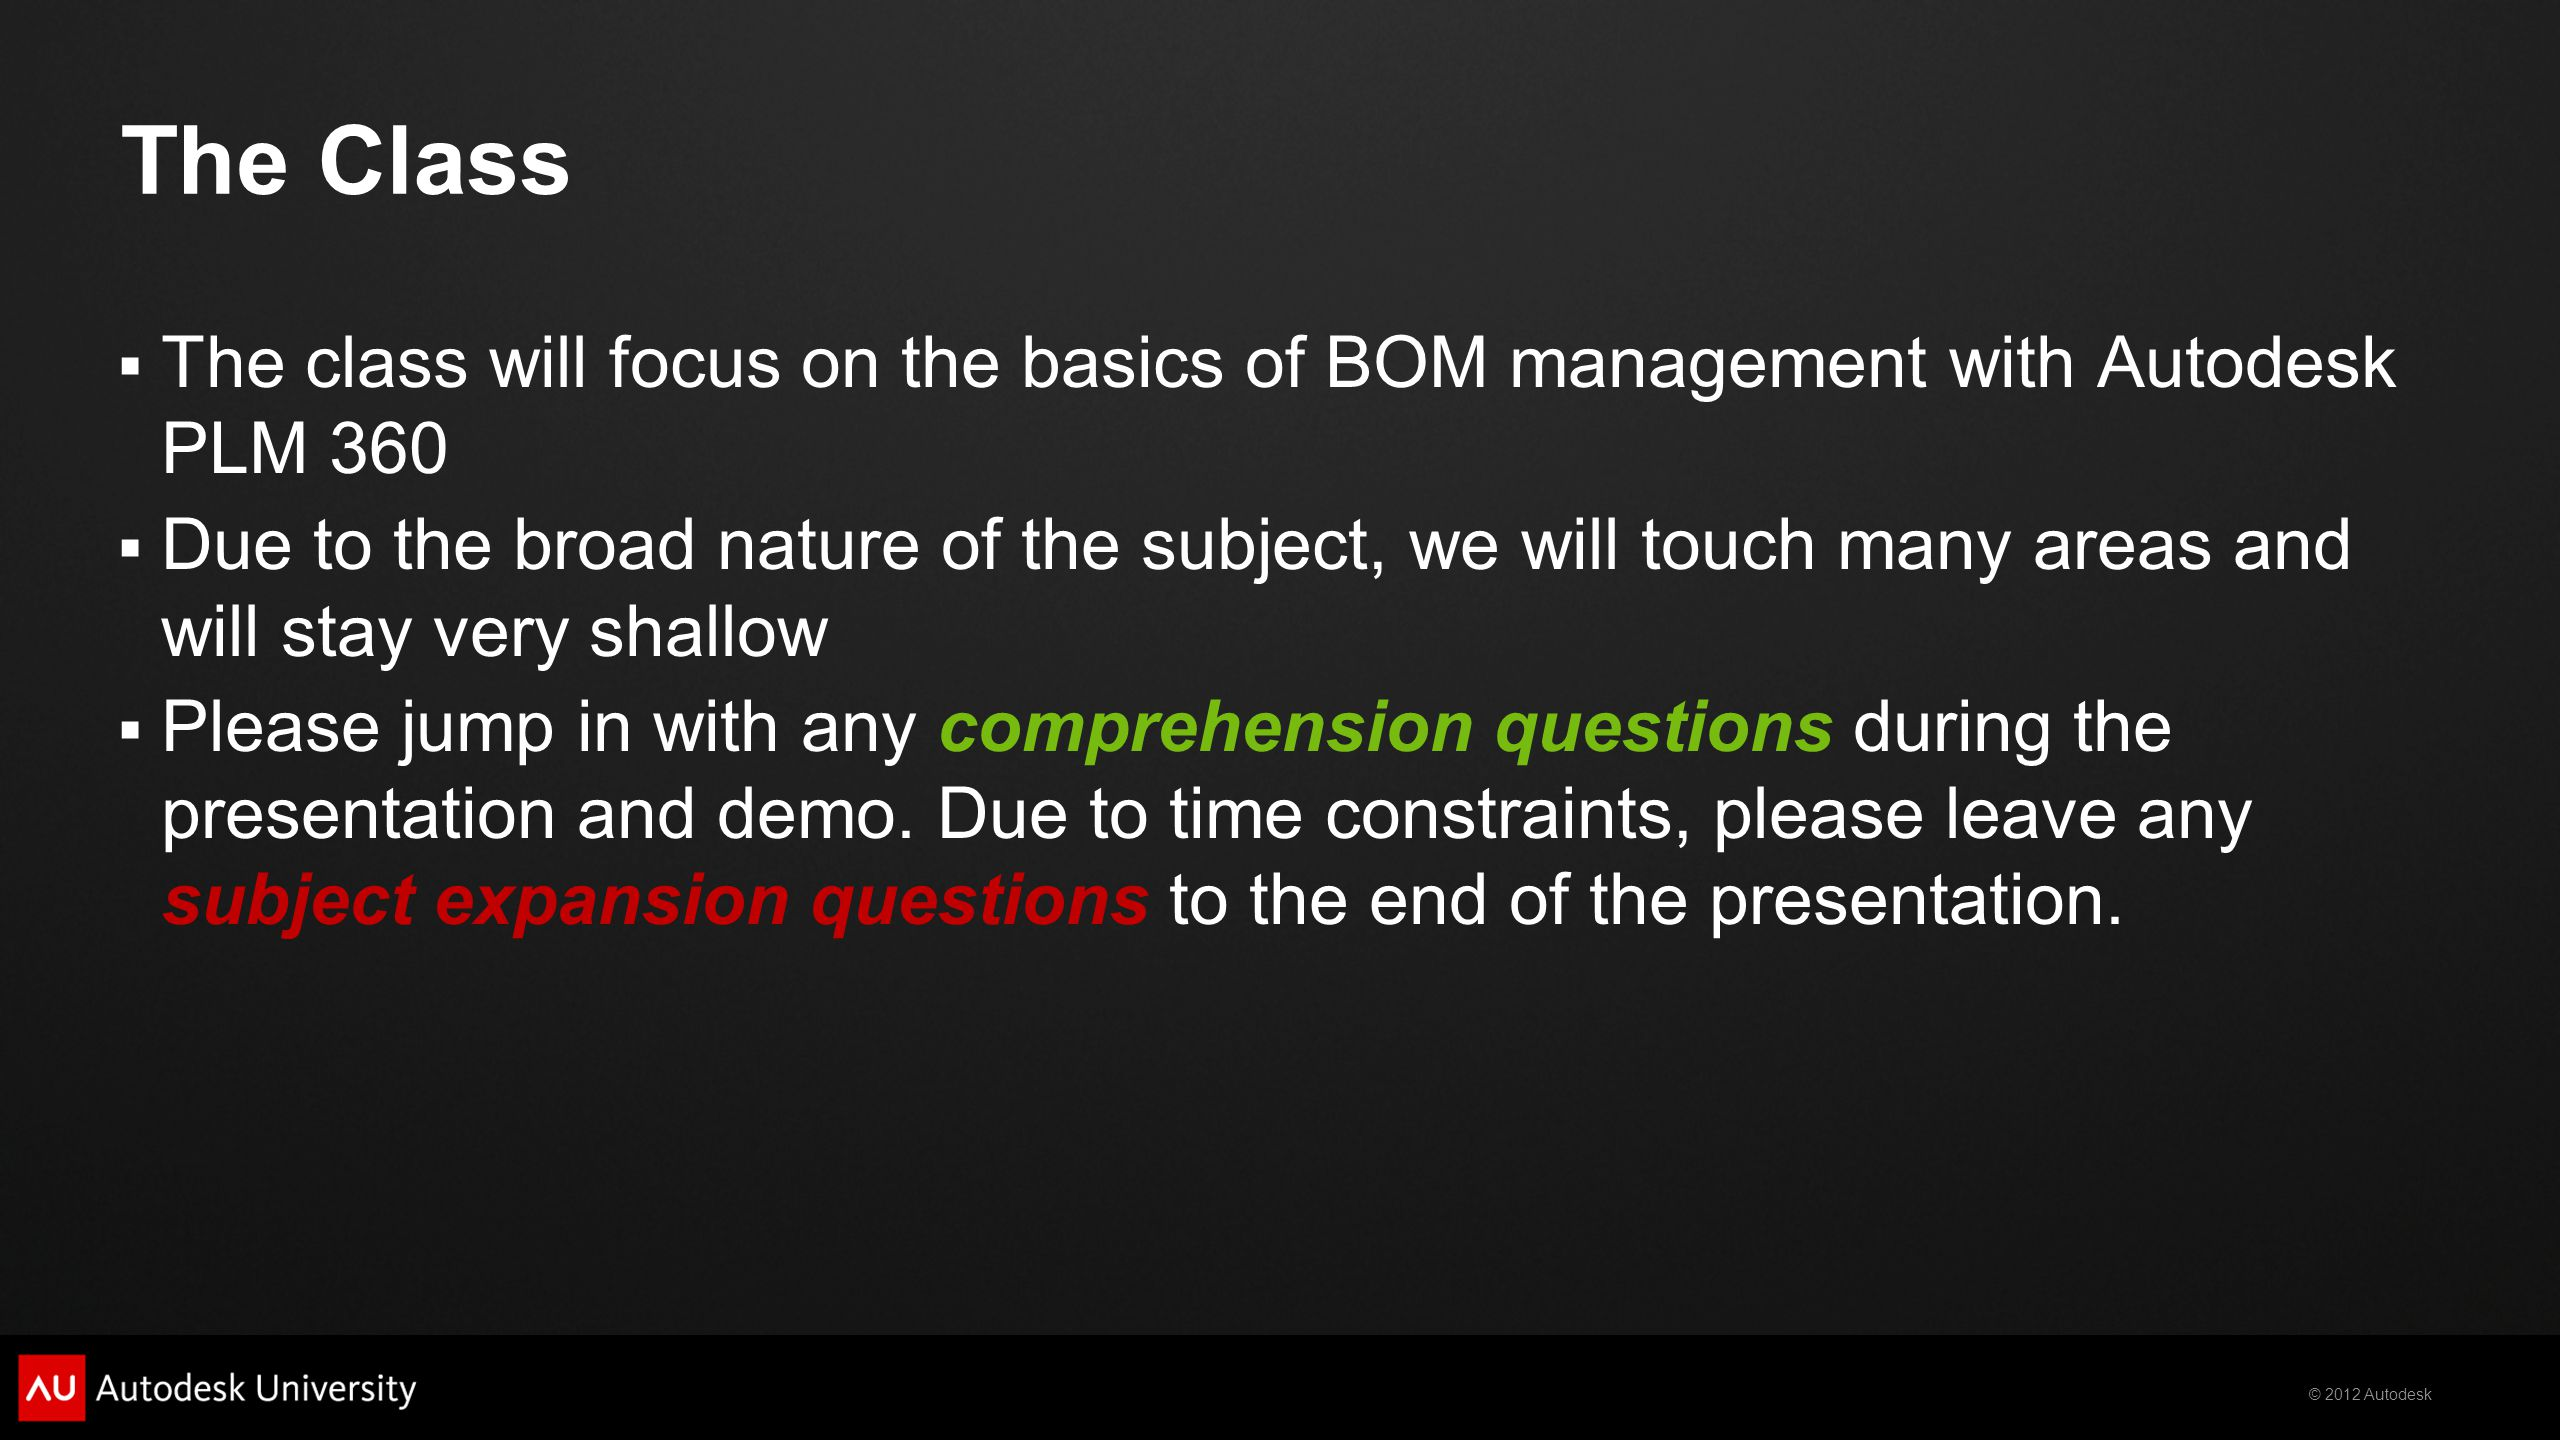 © 2012 Autodesk The Class The class will focus on the basics of BOM management with Autodesk PLM 360 Due to the broad nature of the subject, we will touch many areas and will stay very shallow Please jump in with any comprehension questions during the presentation and demo.